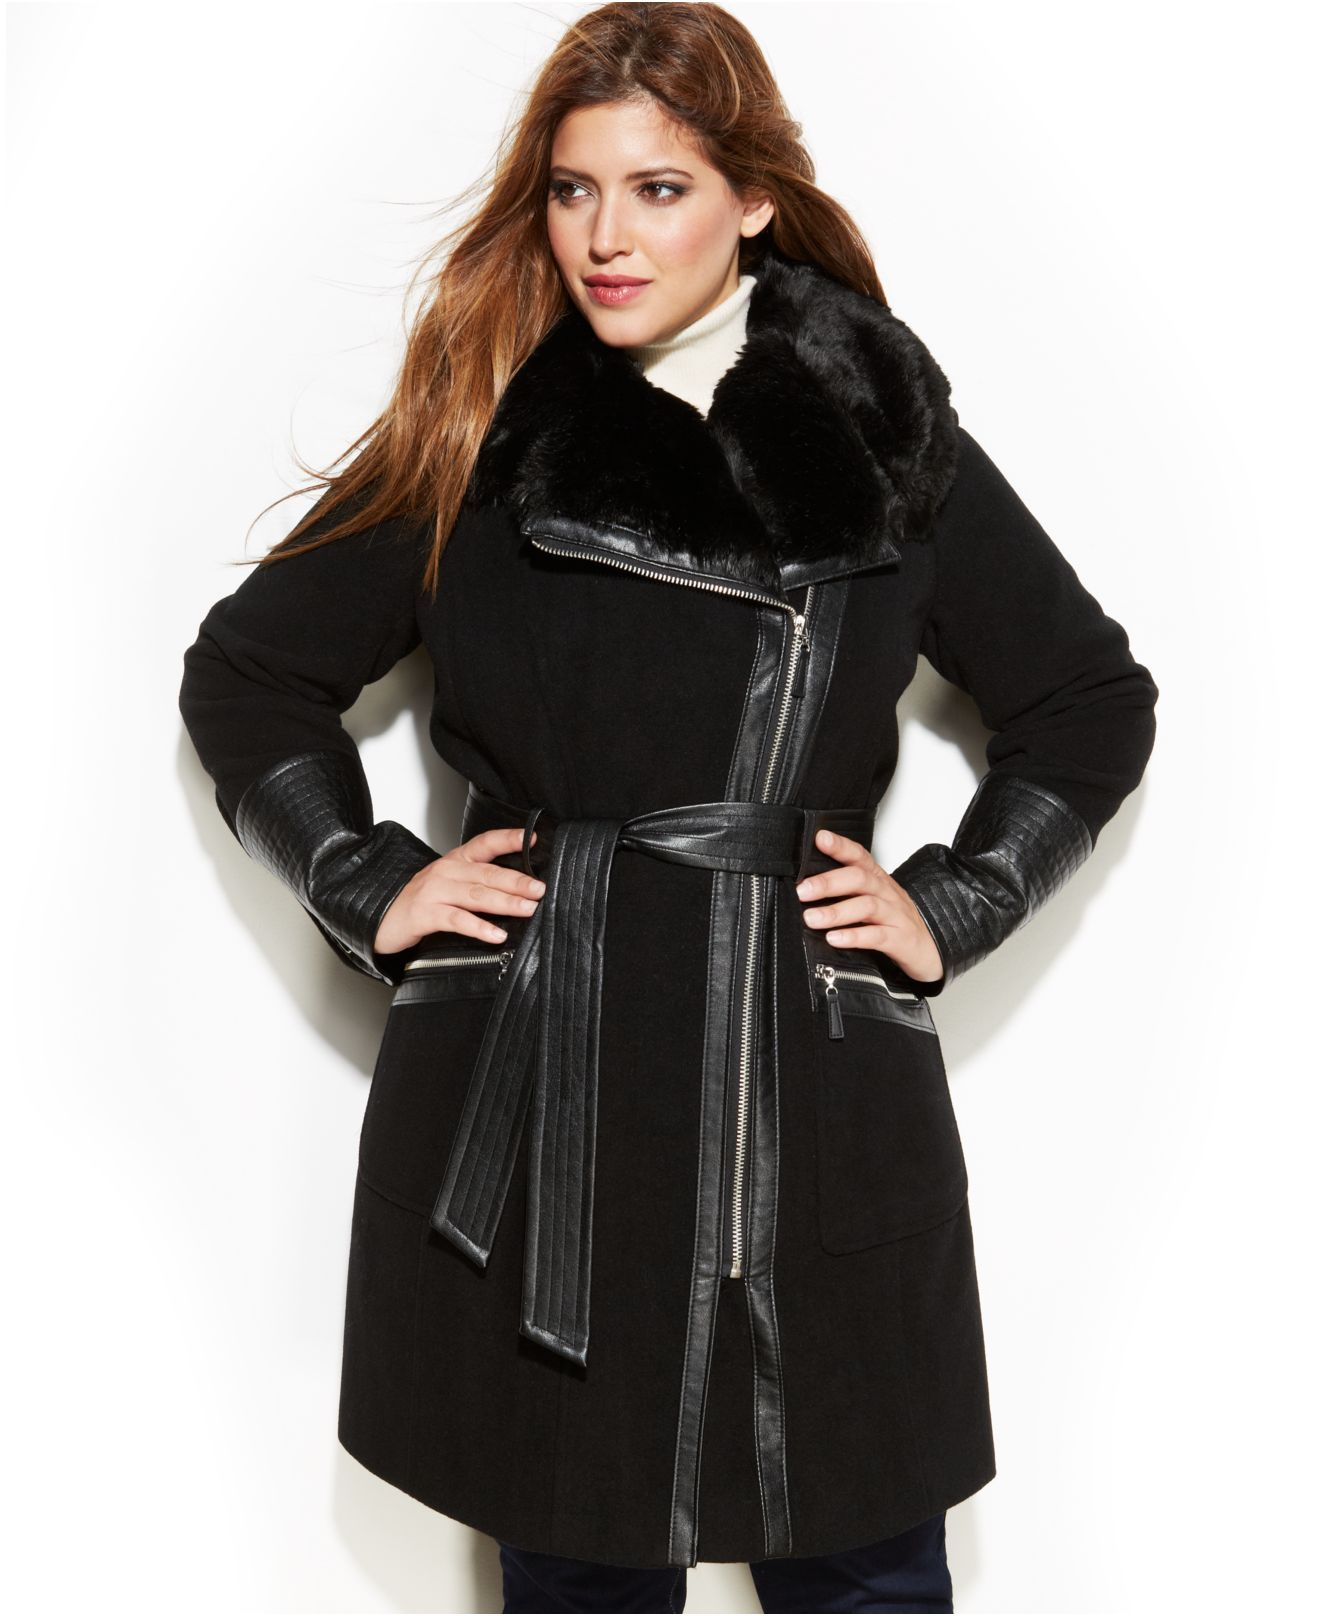 plus size winter coat Yahoo Image Search Results